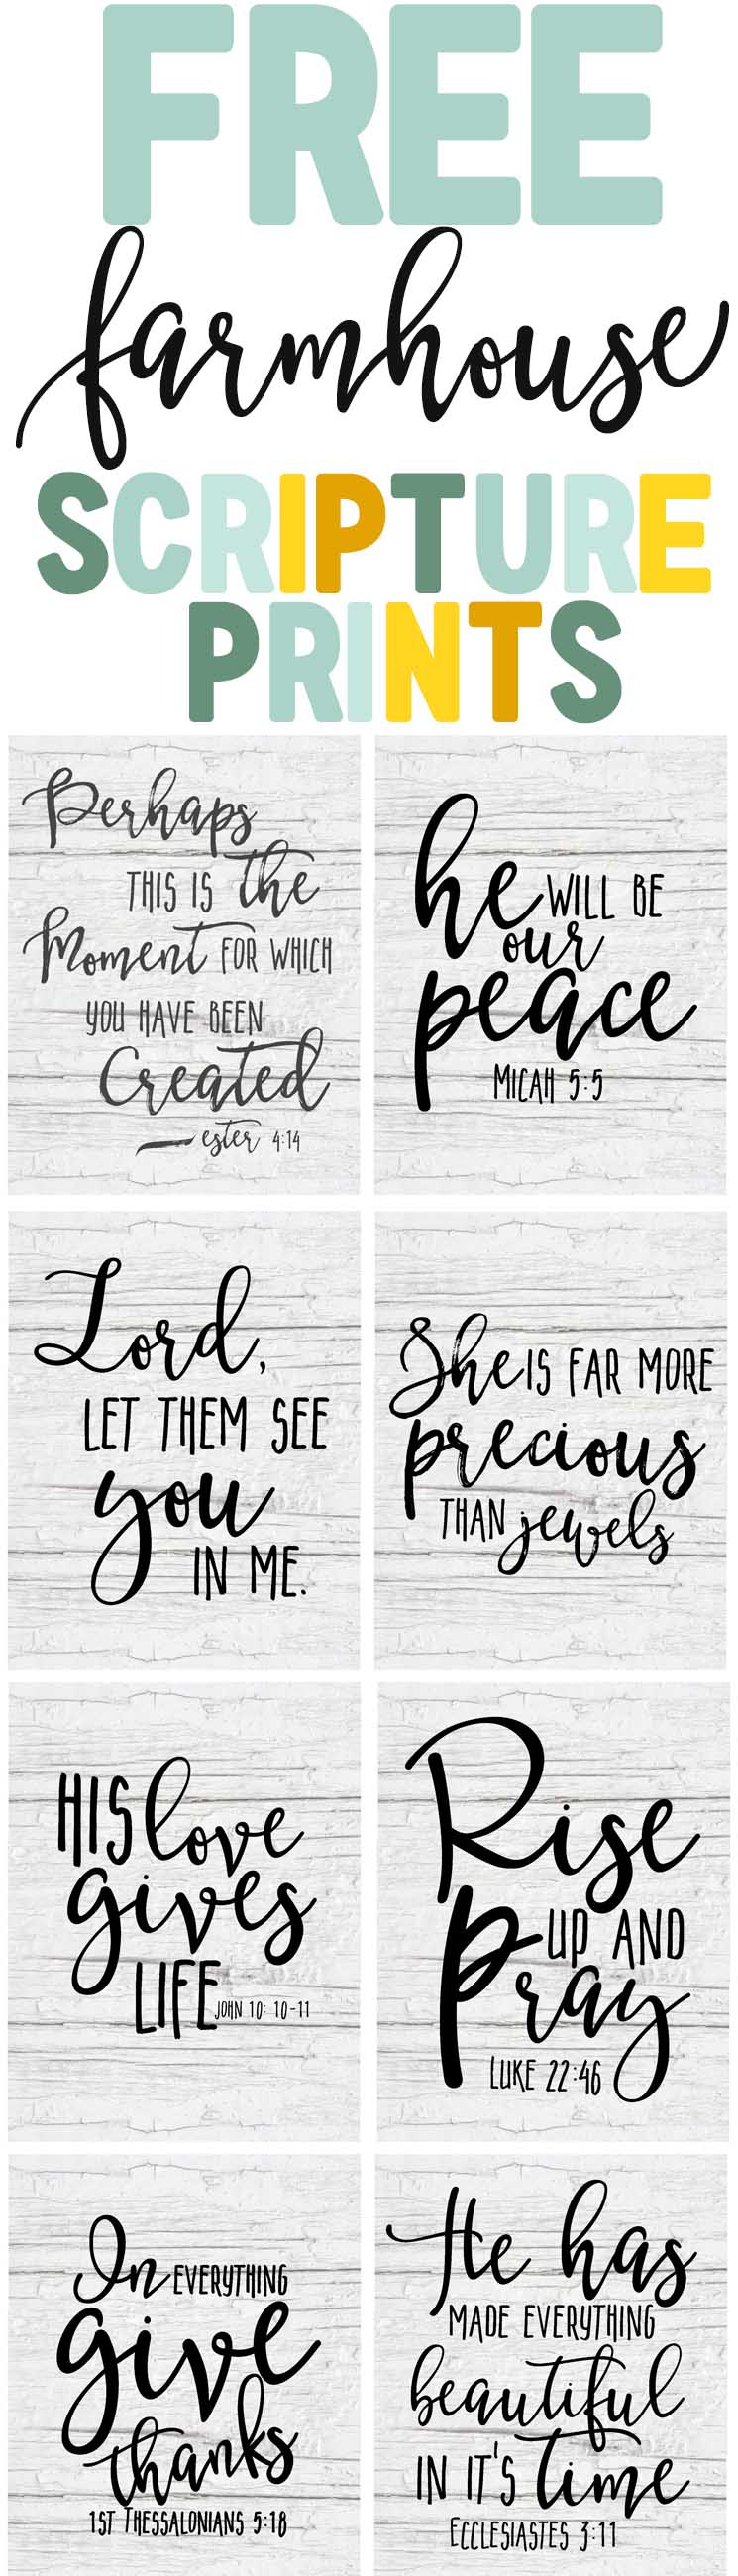 Free Farmhouse Scripture Printables - The Mountain View Cottage - Free Printable Scripture Verses